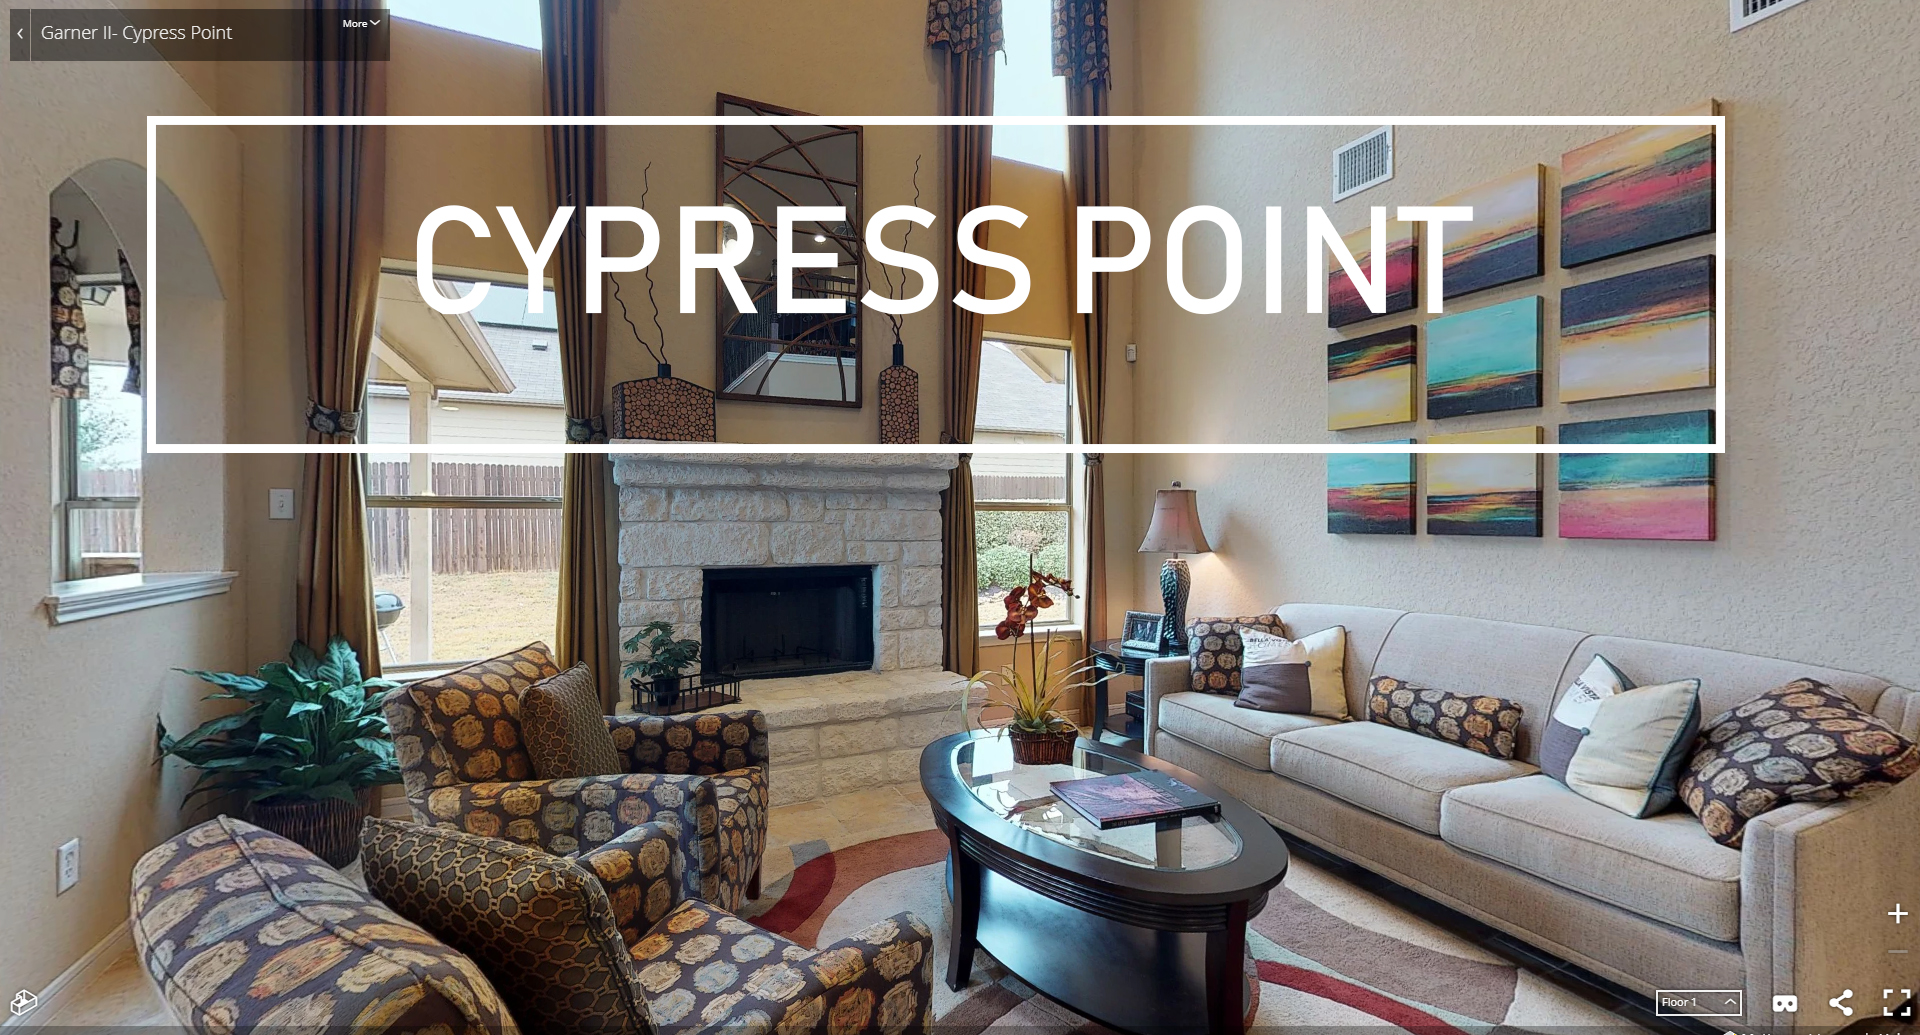 Cypress Point Video